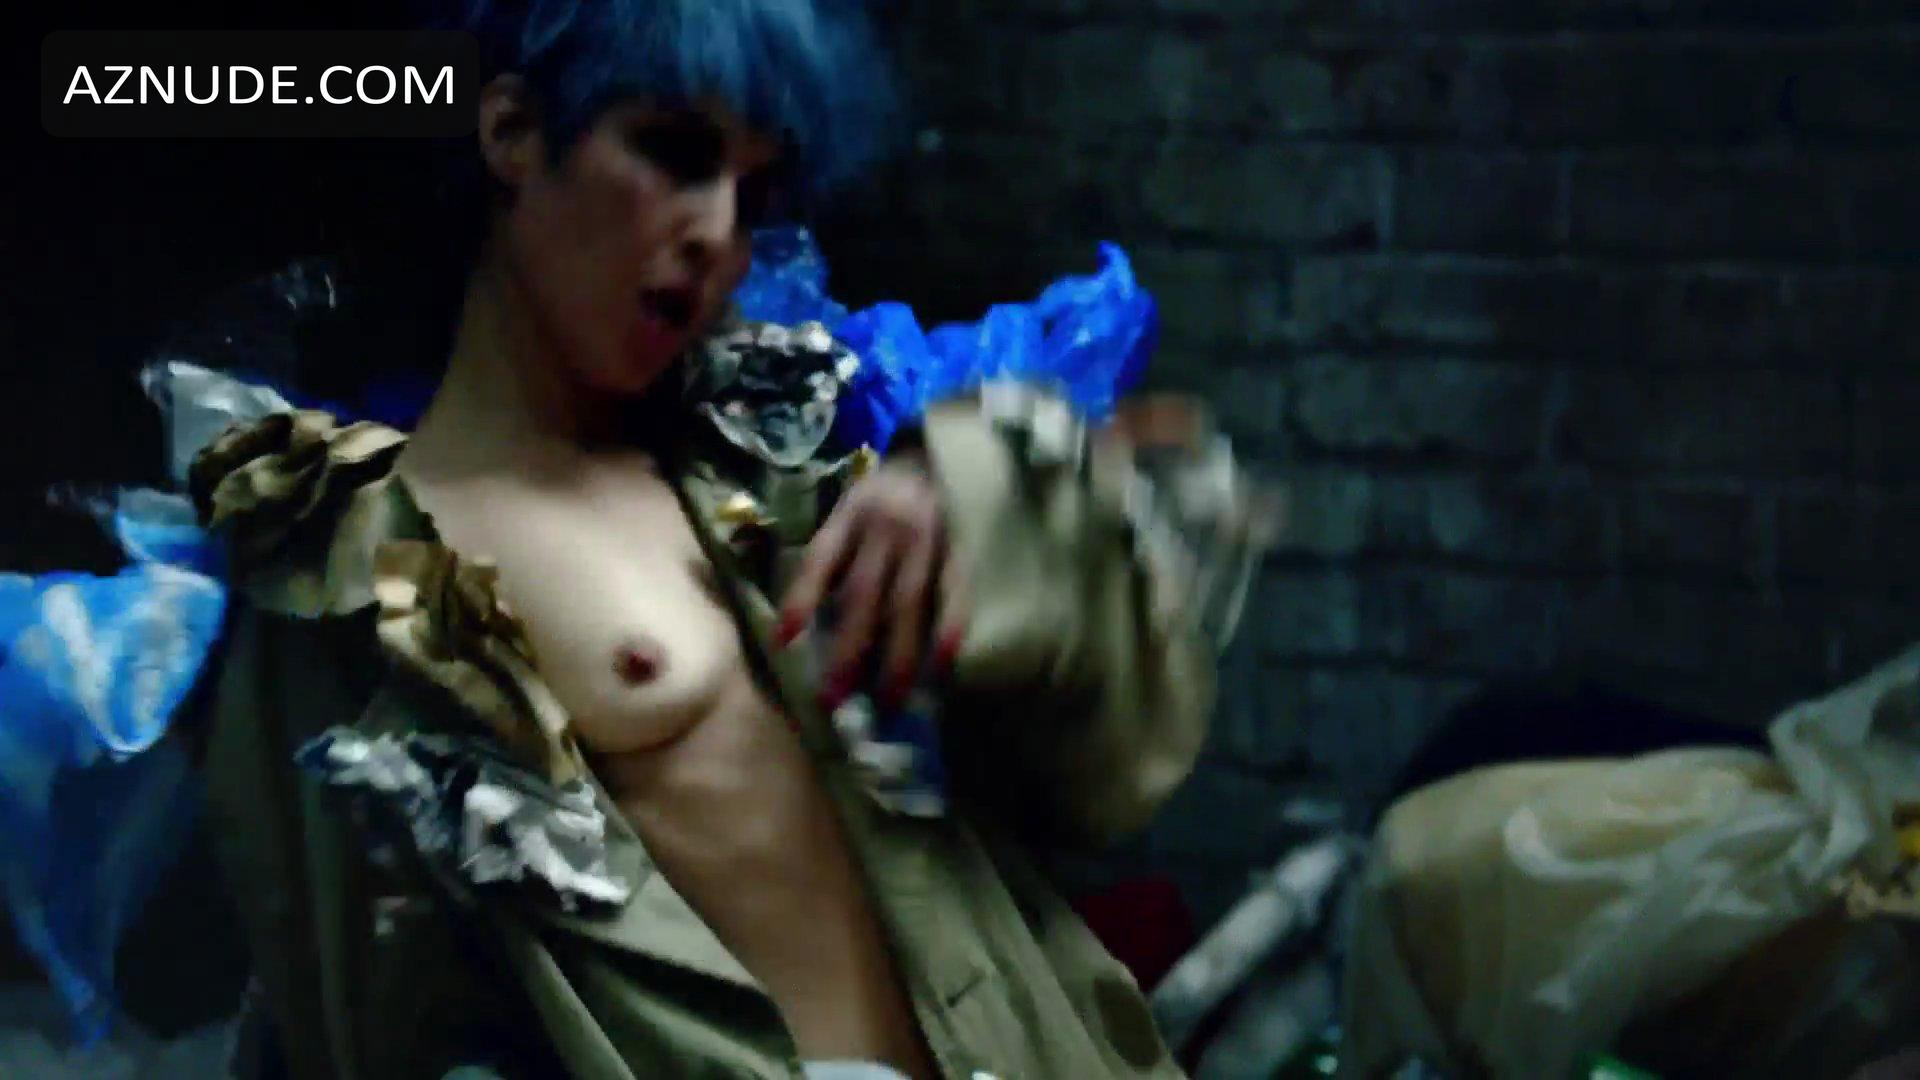 Noomi rapace nude the girl with the dragon tattoo 2009 - 2 8